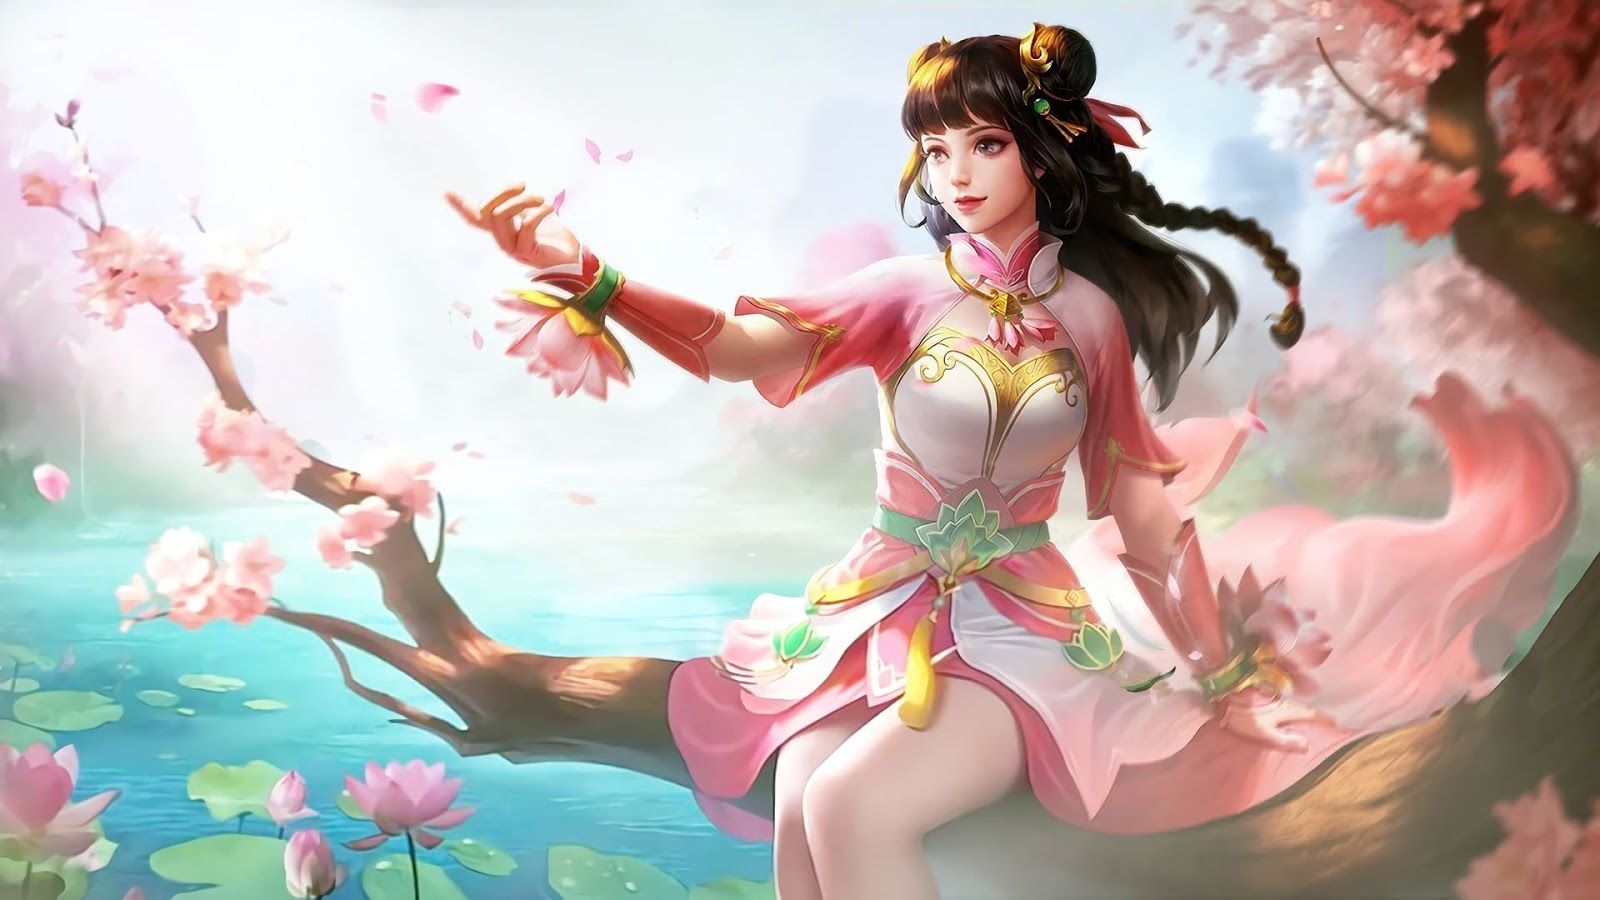 Wallpaper Guinevere Lotus Skin Mobile Legends HD for PC